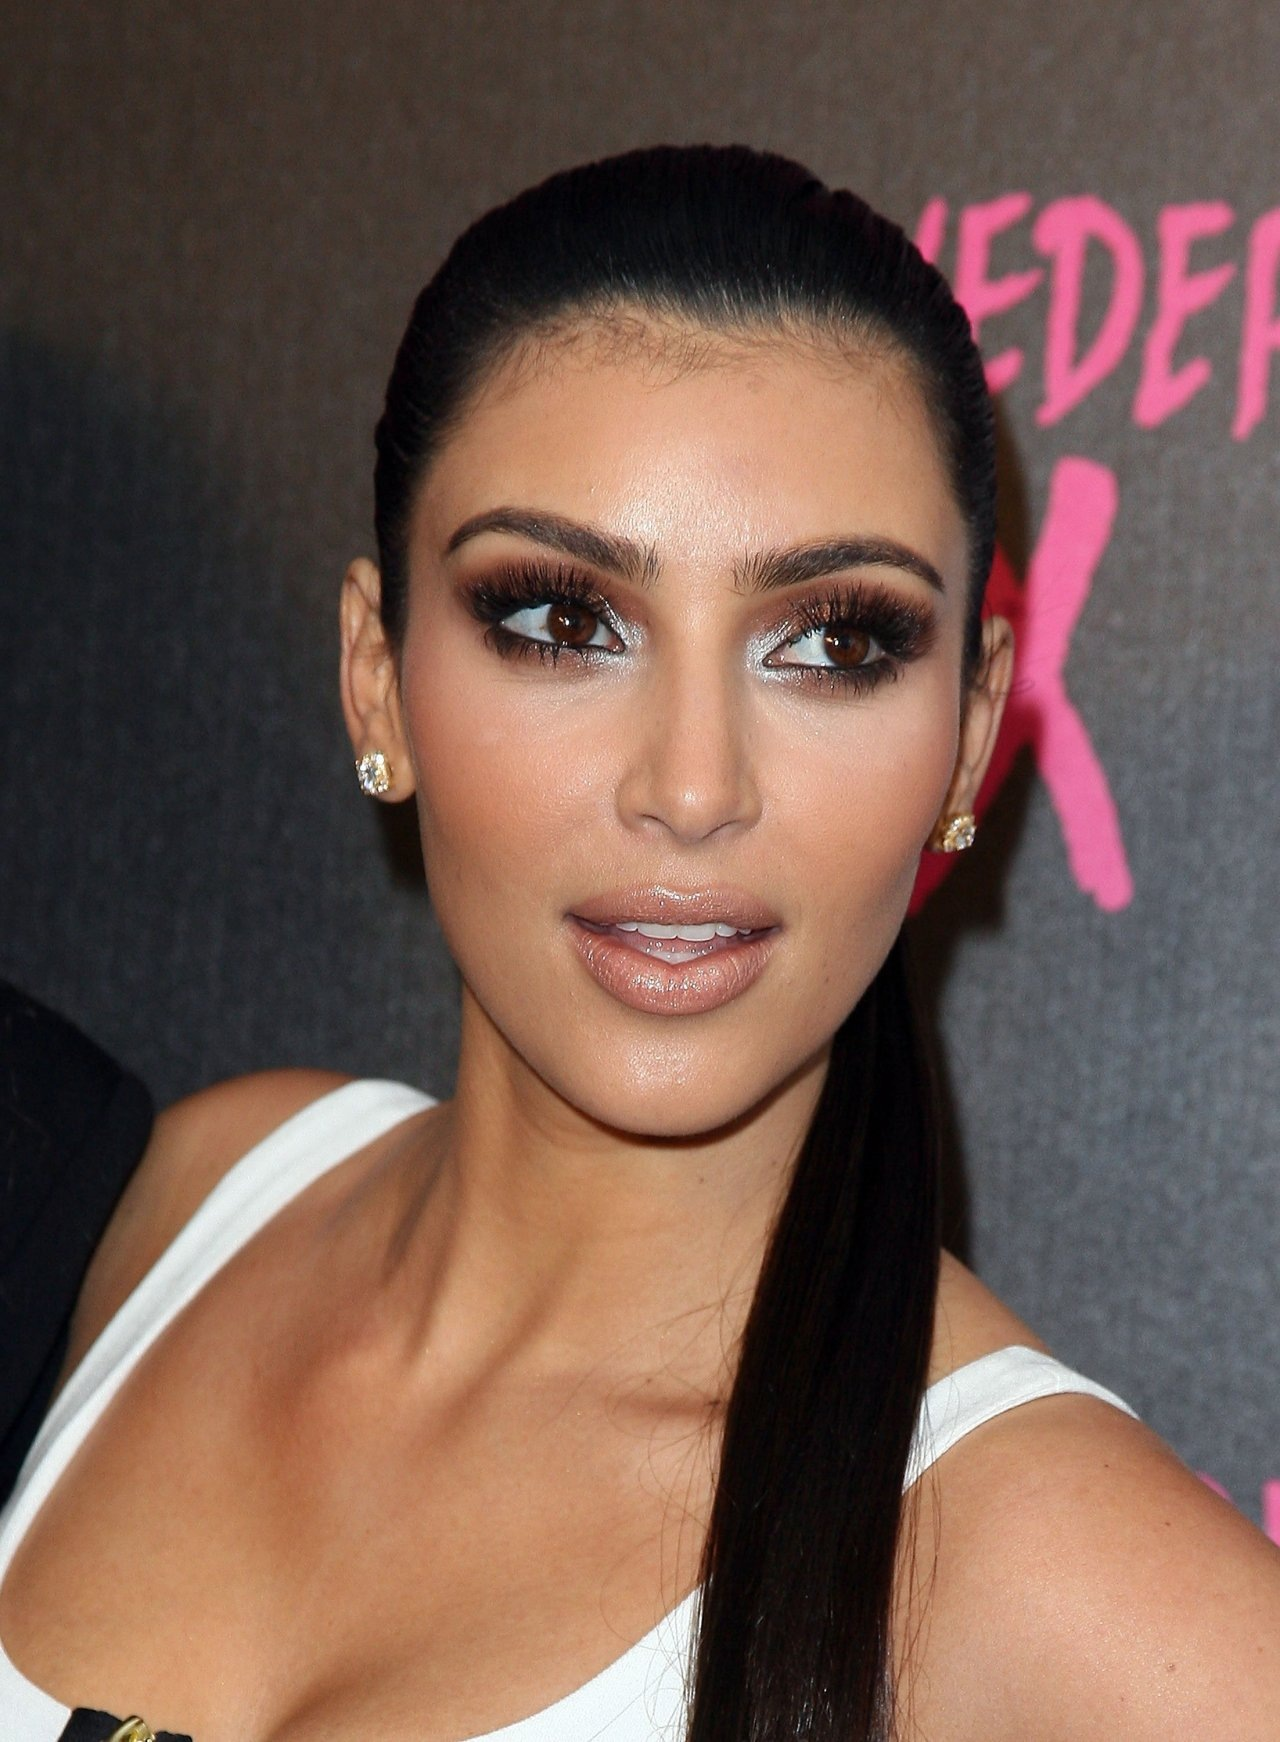 the-internet-needs-to-stop-victim-blaming-kim-kardashian-and-here-is-why-008